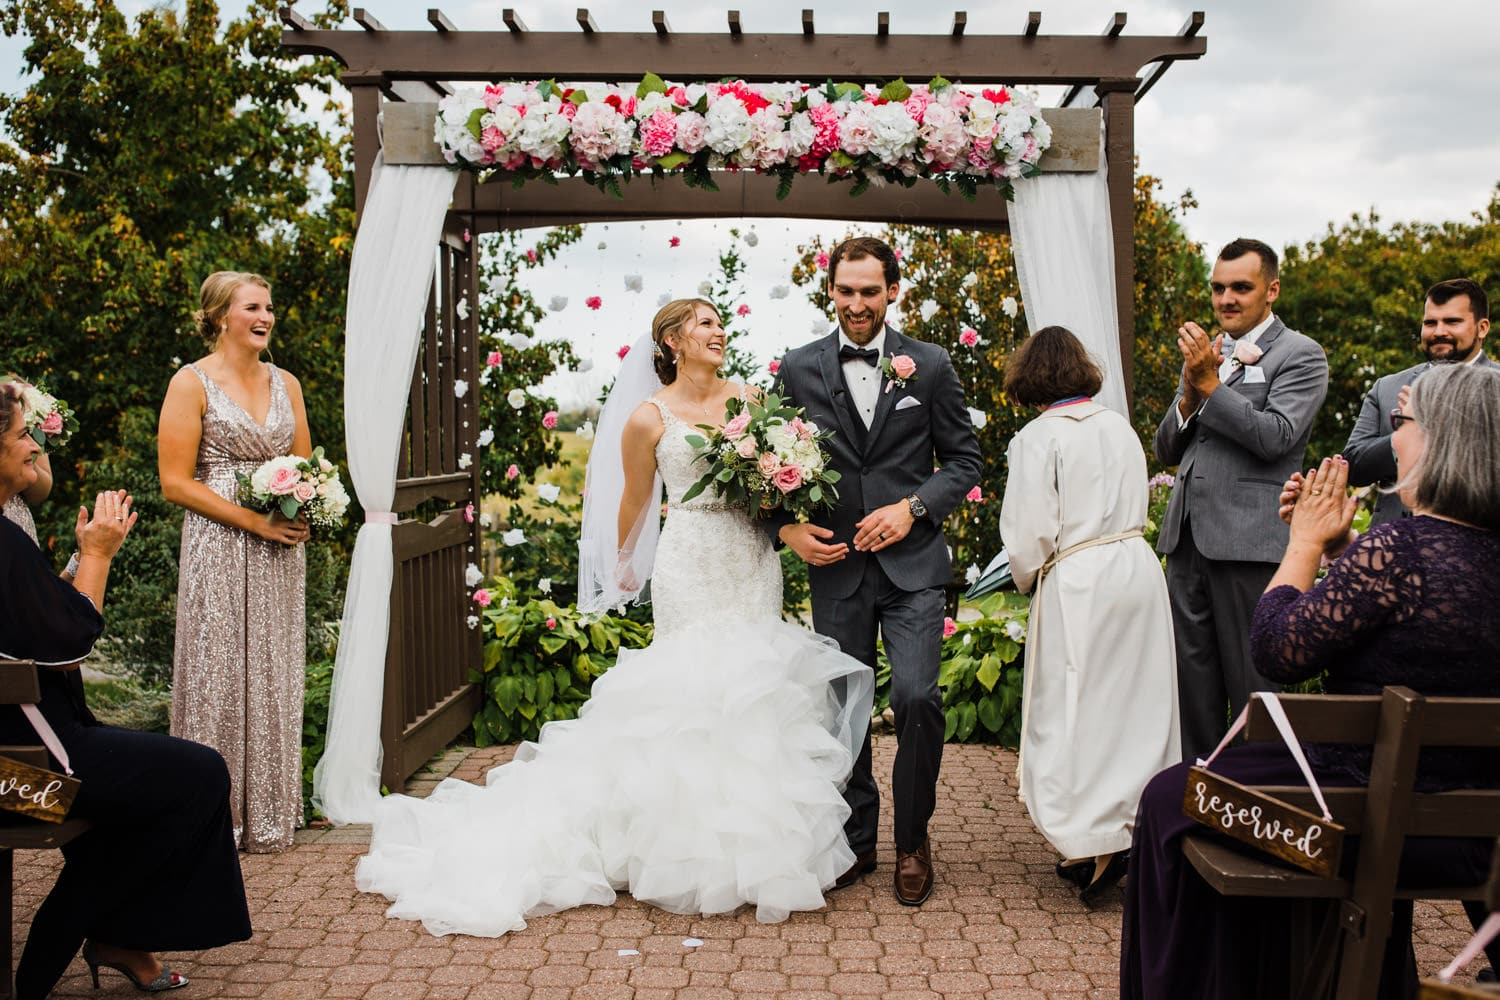 bride and groom laugh while walking down aisle together - summer strathmere wedding